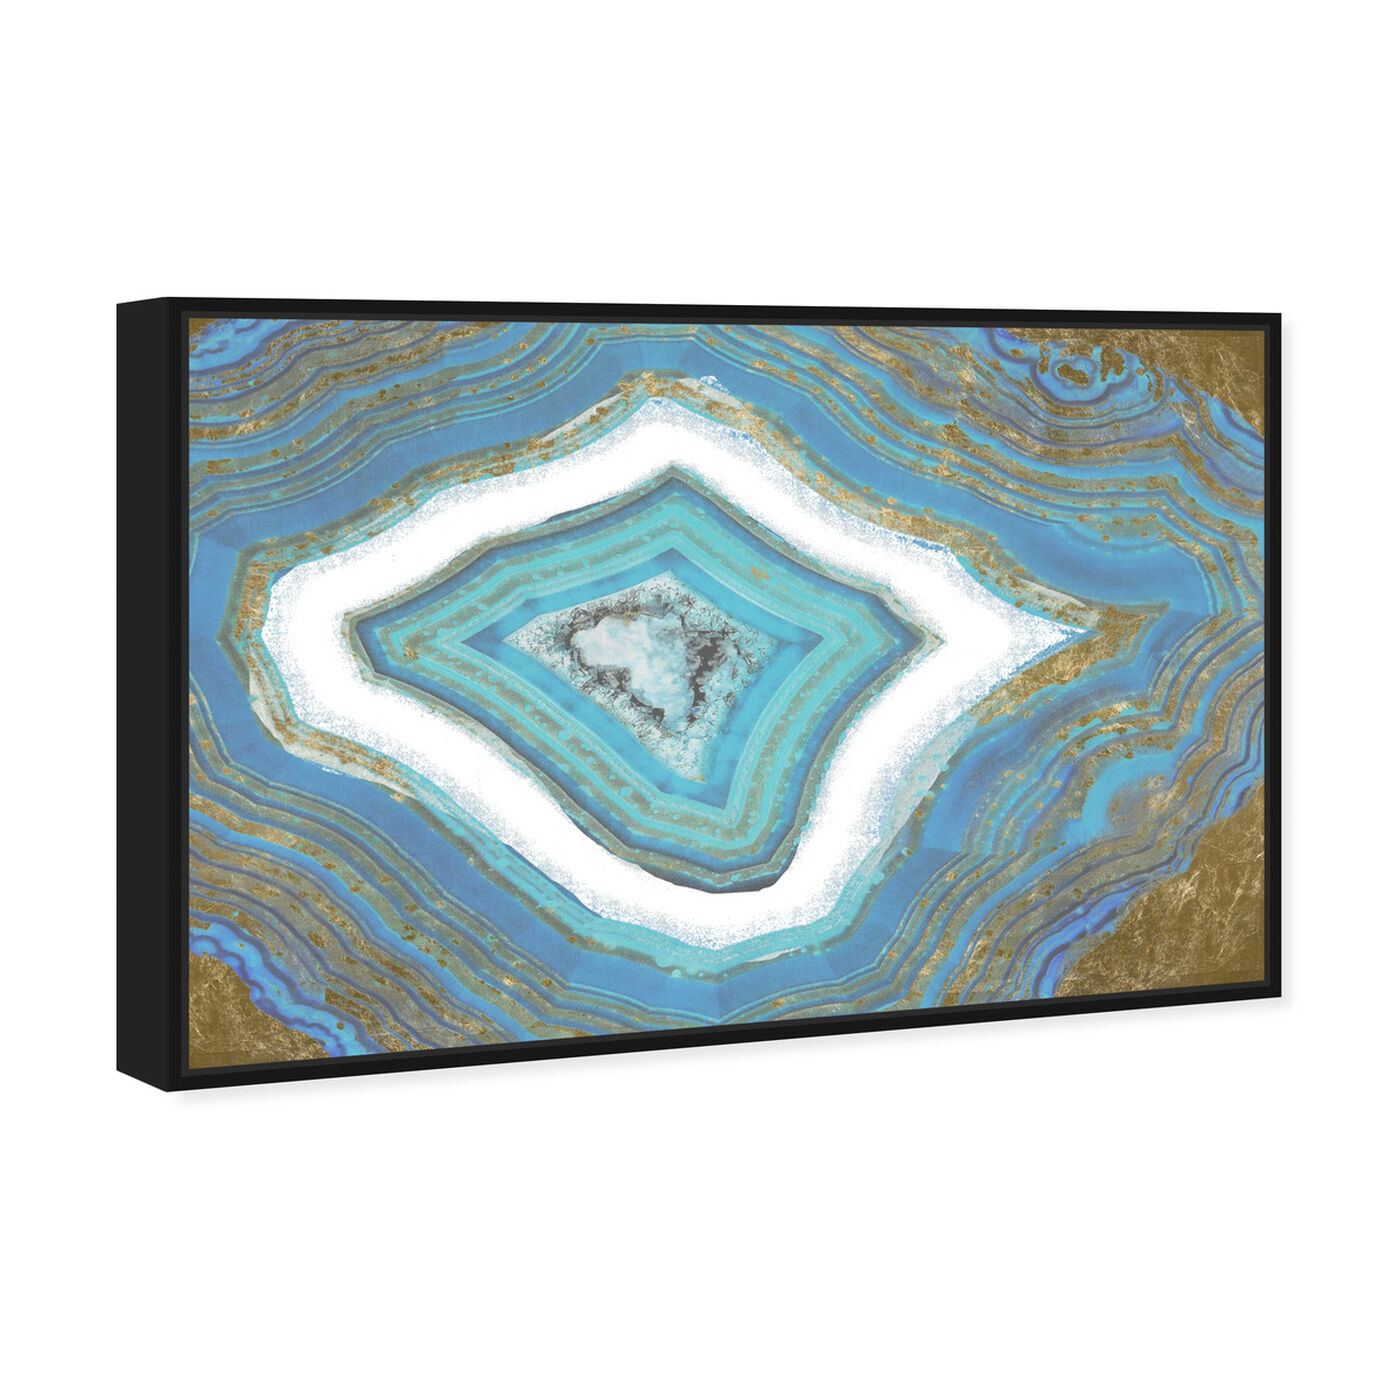 Angled view of Rochester Geode featuring abstract and crystals art.